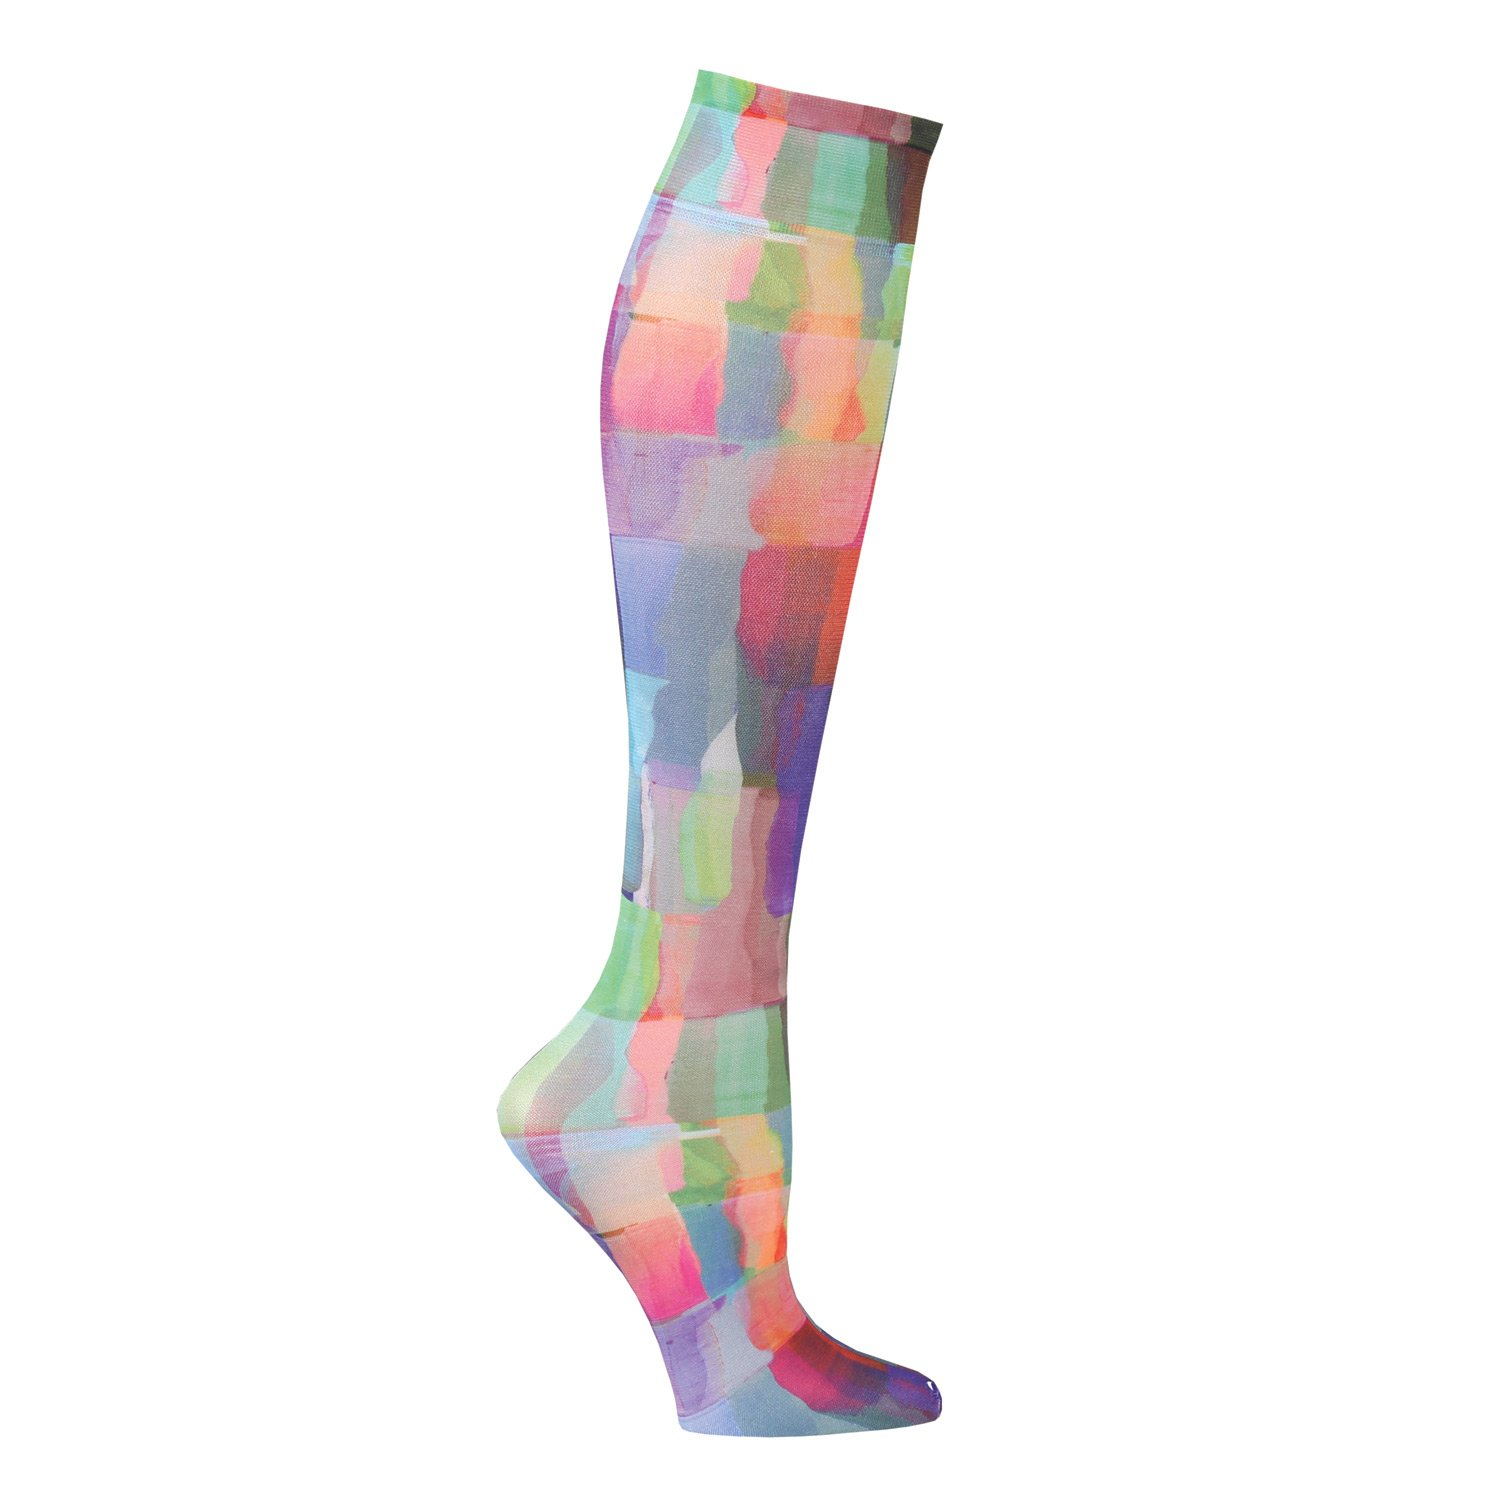 Celeste Stein Mild Compression Knee High Stockings, Wide Calf - Rainbow Tiles